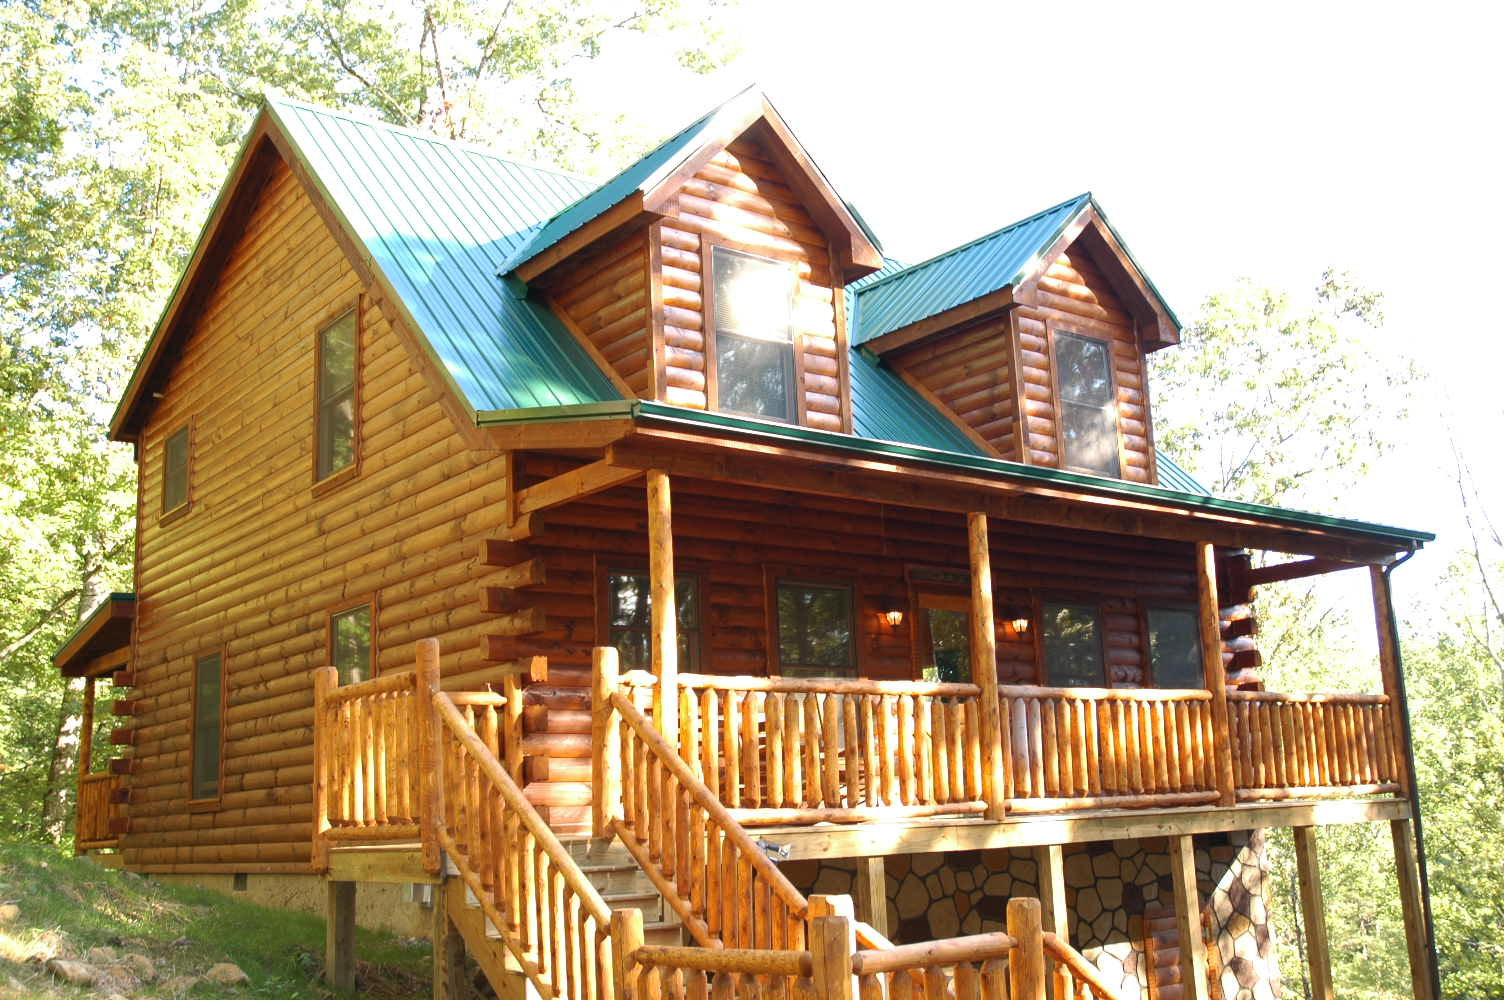 pet gatlburg private large cabin gatlinburg friendly in tenn yard fenced forge swimming cabins rentals tn pool pigeon indoor with